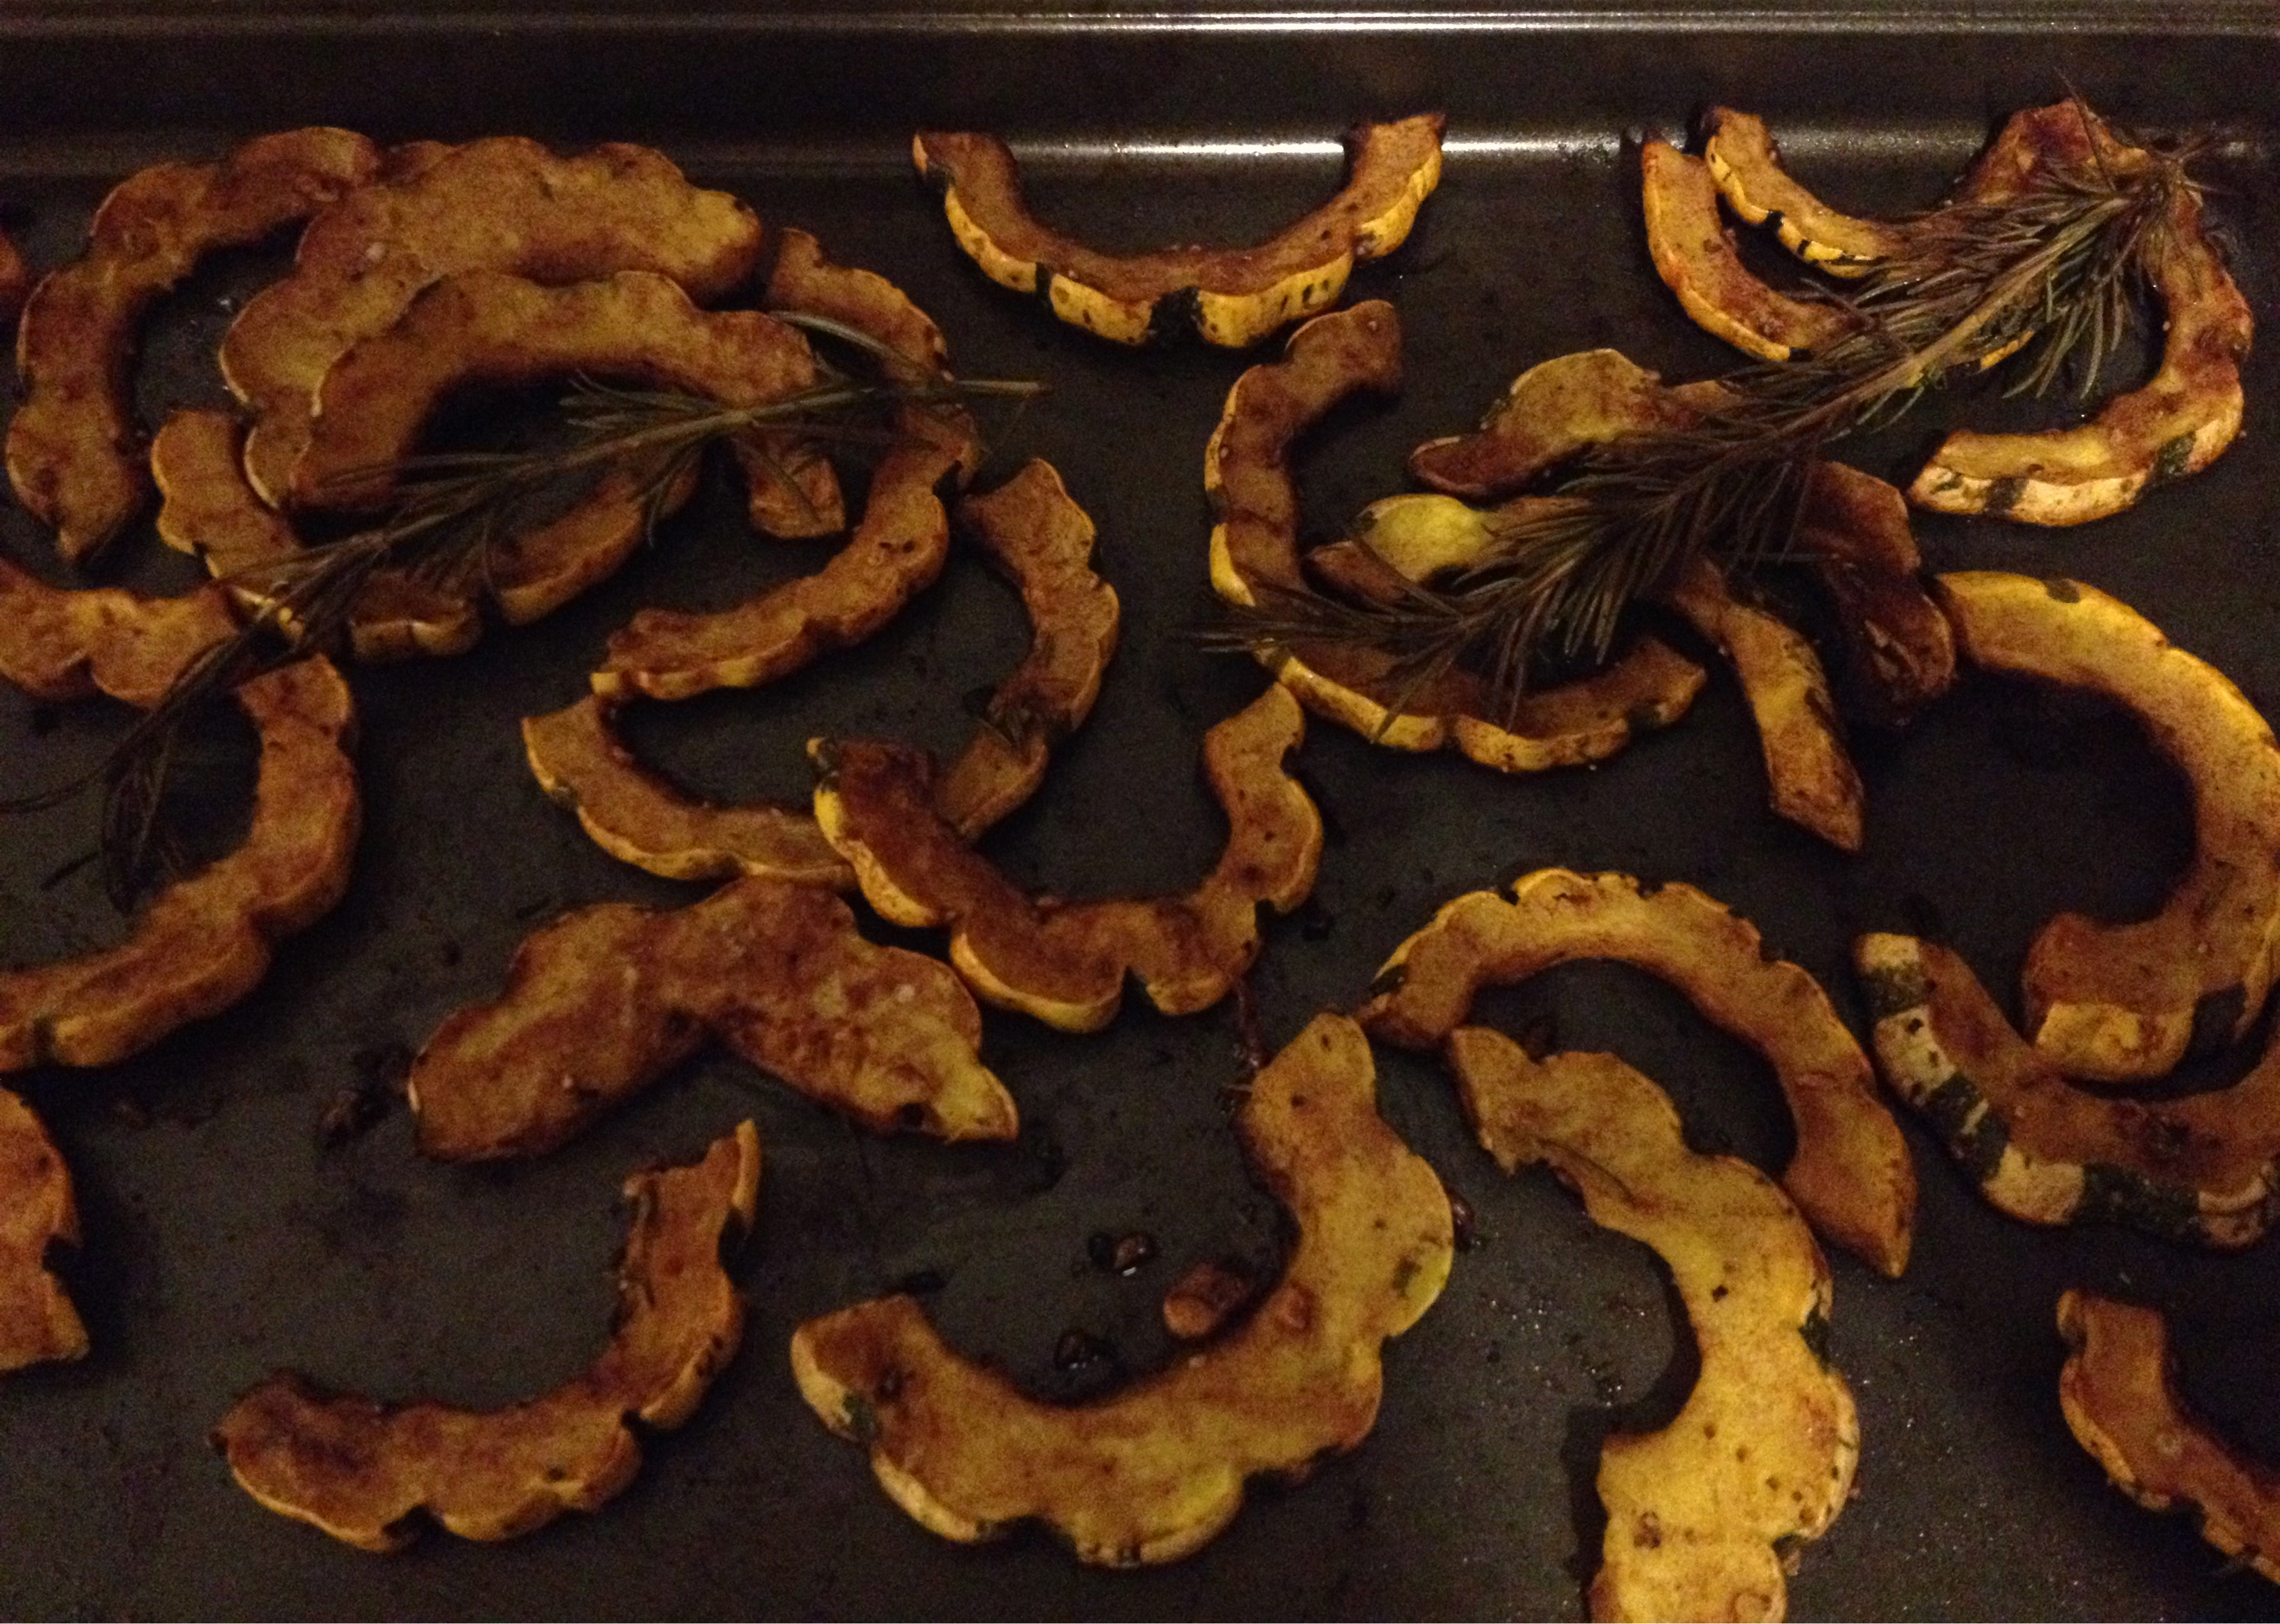 Roasted deicata squash on roasting pan.